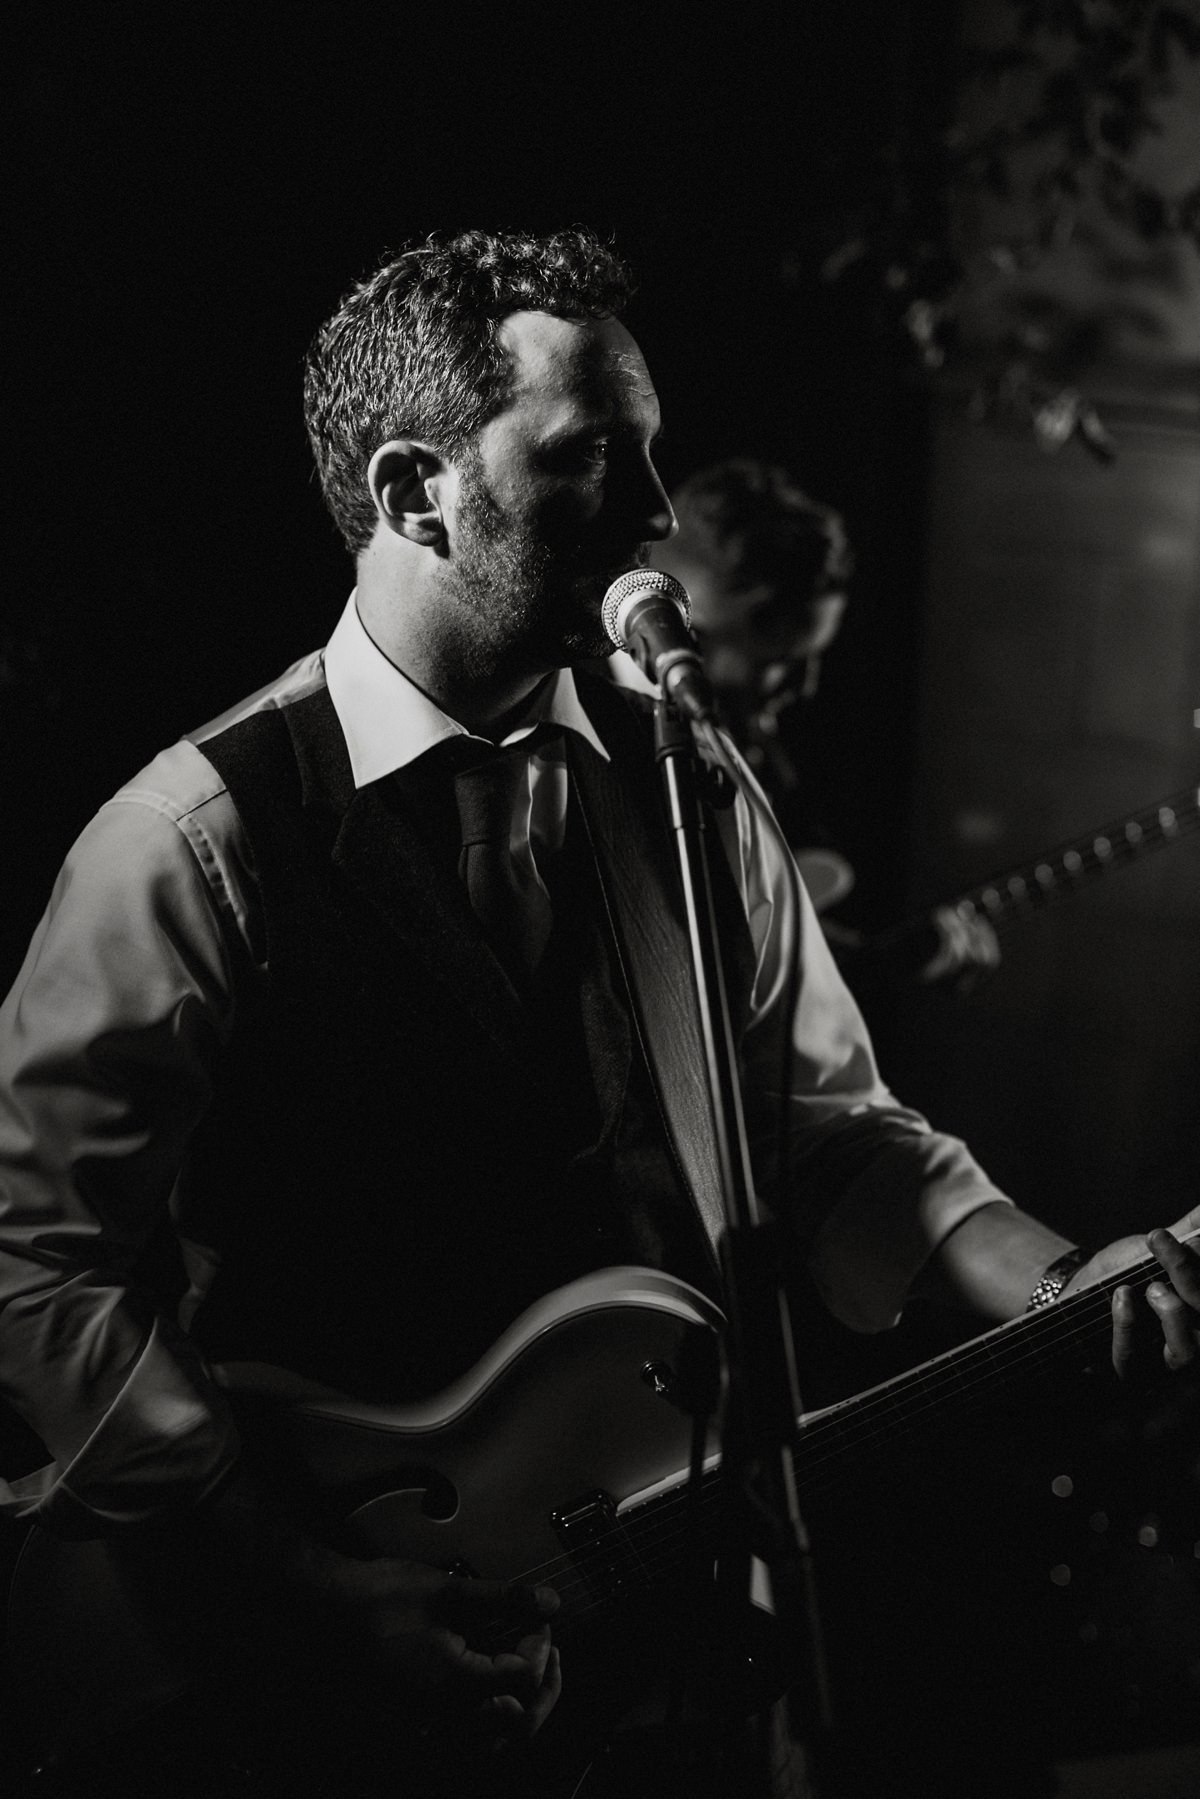 Closeup of groom singing and playing guitar in his band